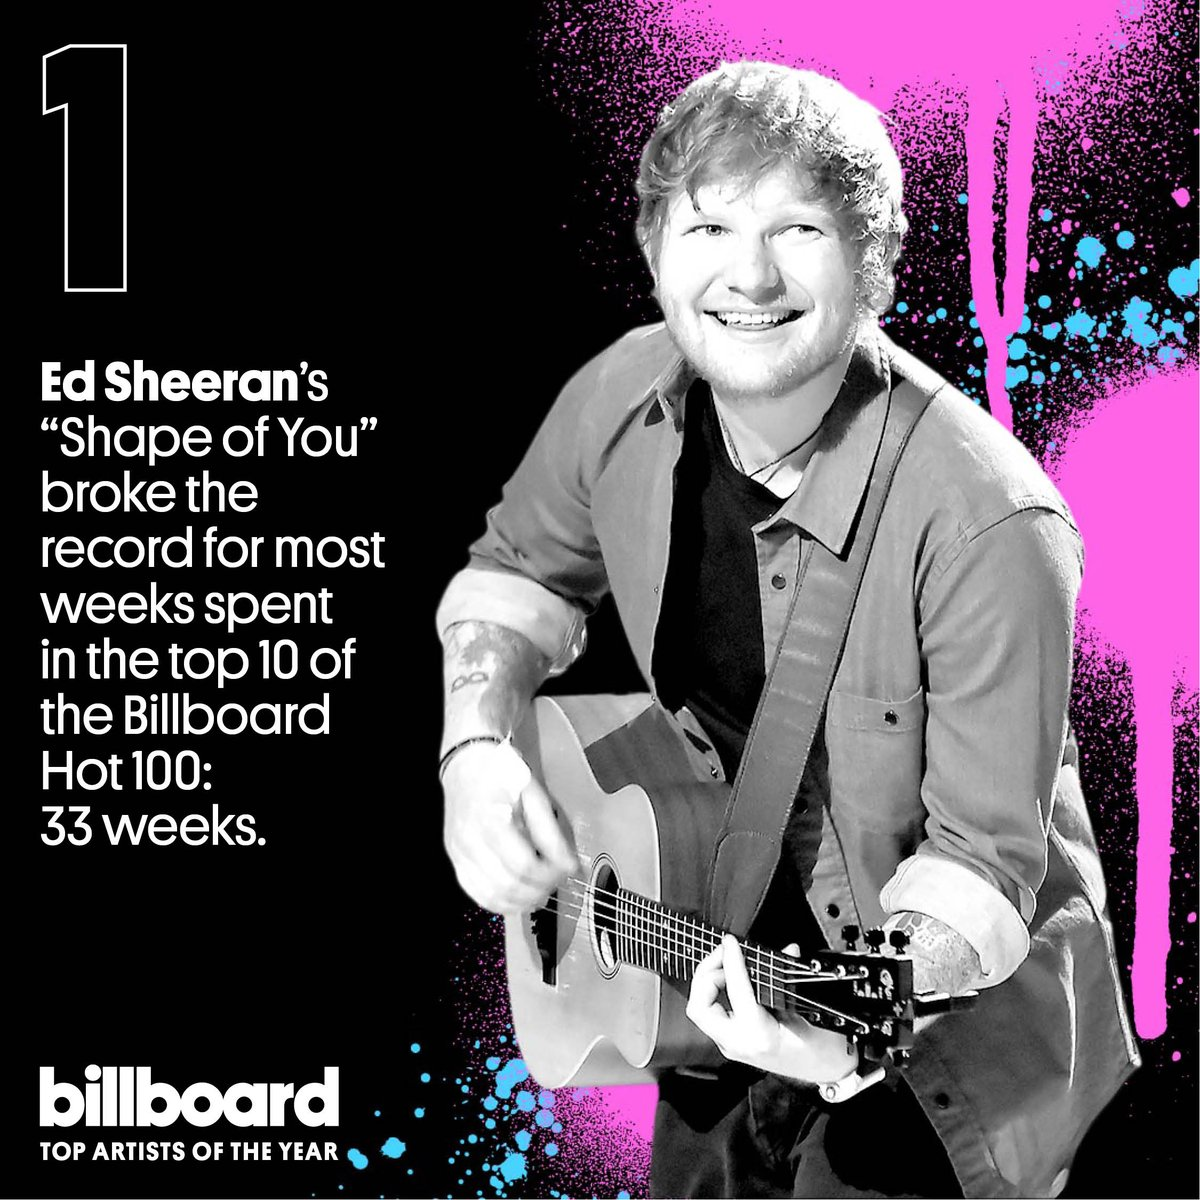 .@EdSheeran tops our top artists of the year list! #YearInMusic https://t.co/Y61Z97AeAf https://t.co/IgKHR8vp0W